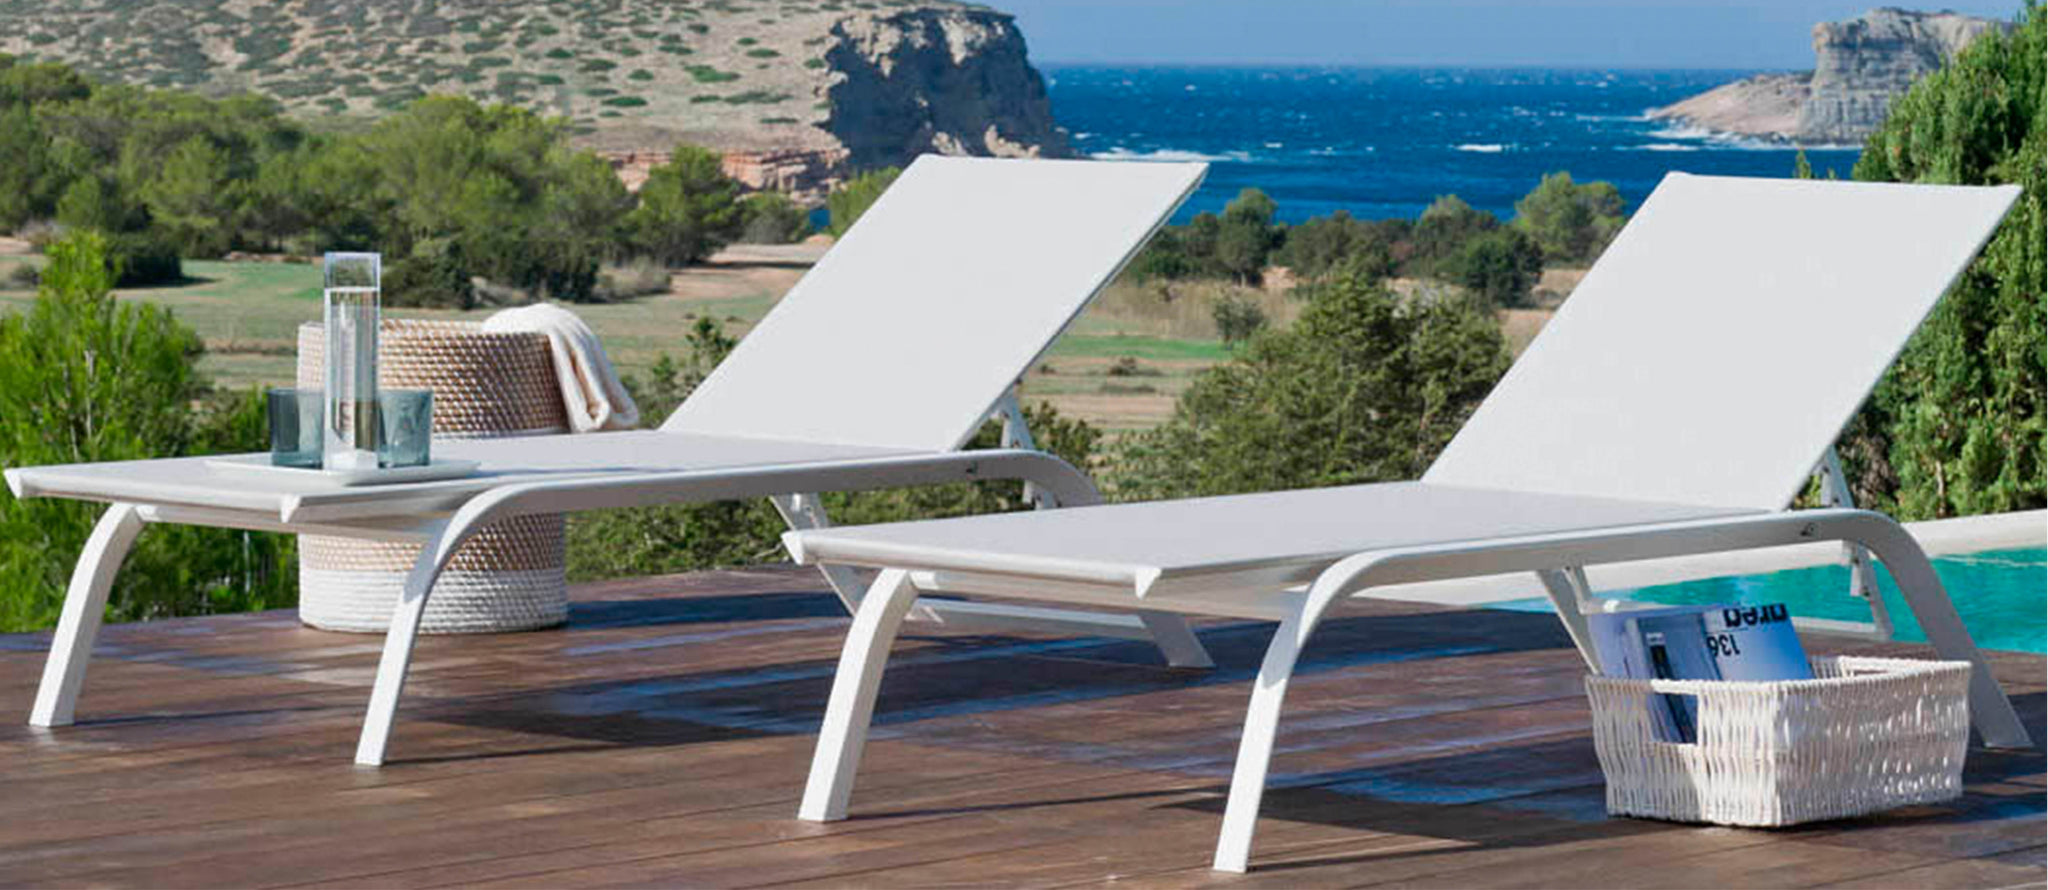 Knox Design Garden Furniture in Mallorca